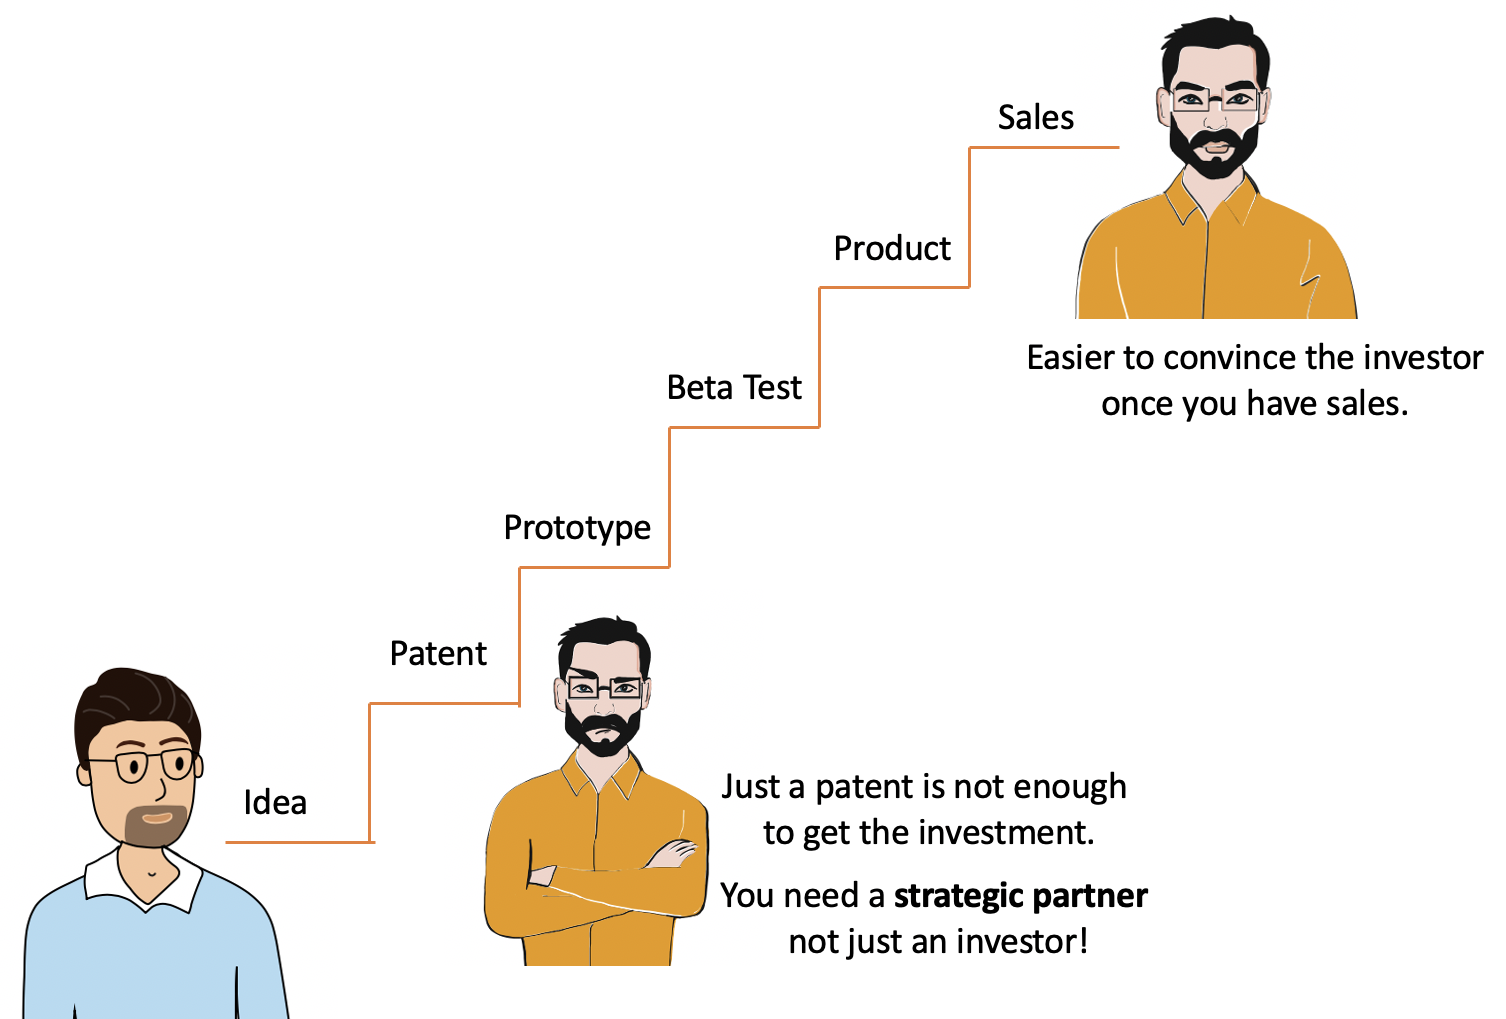 Patents are easier to monetize when bundled with a business